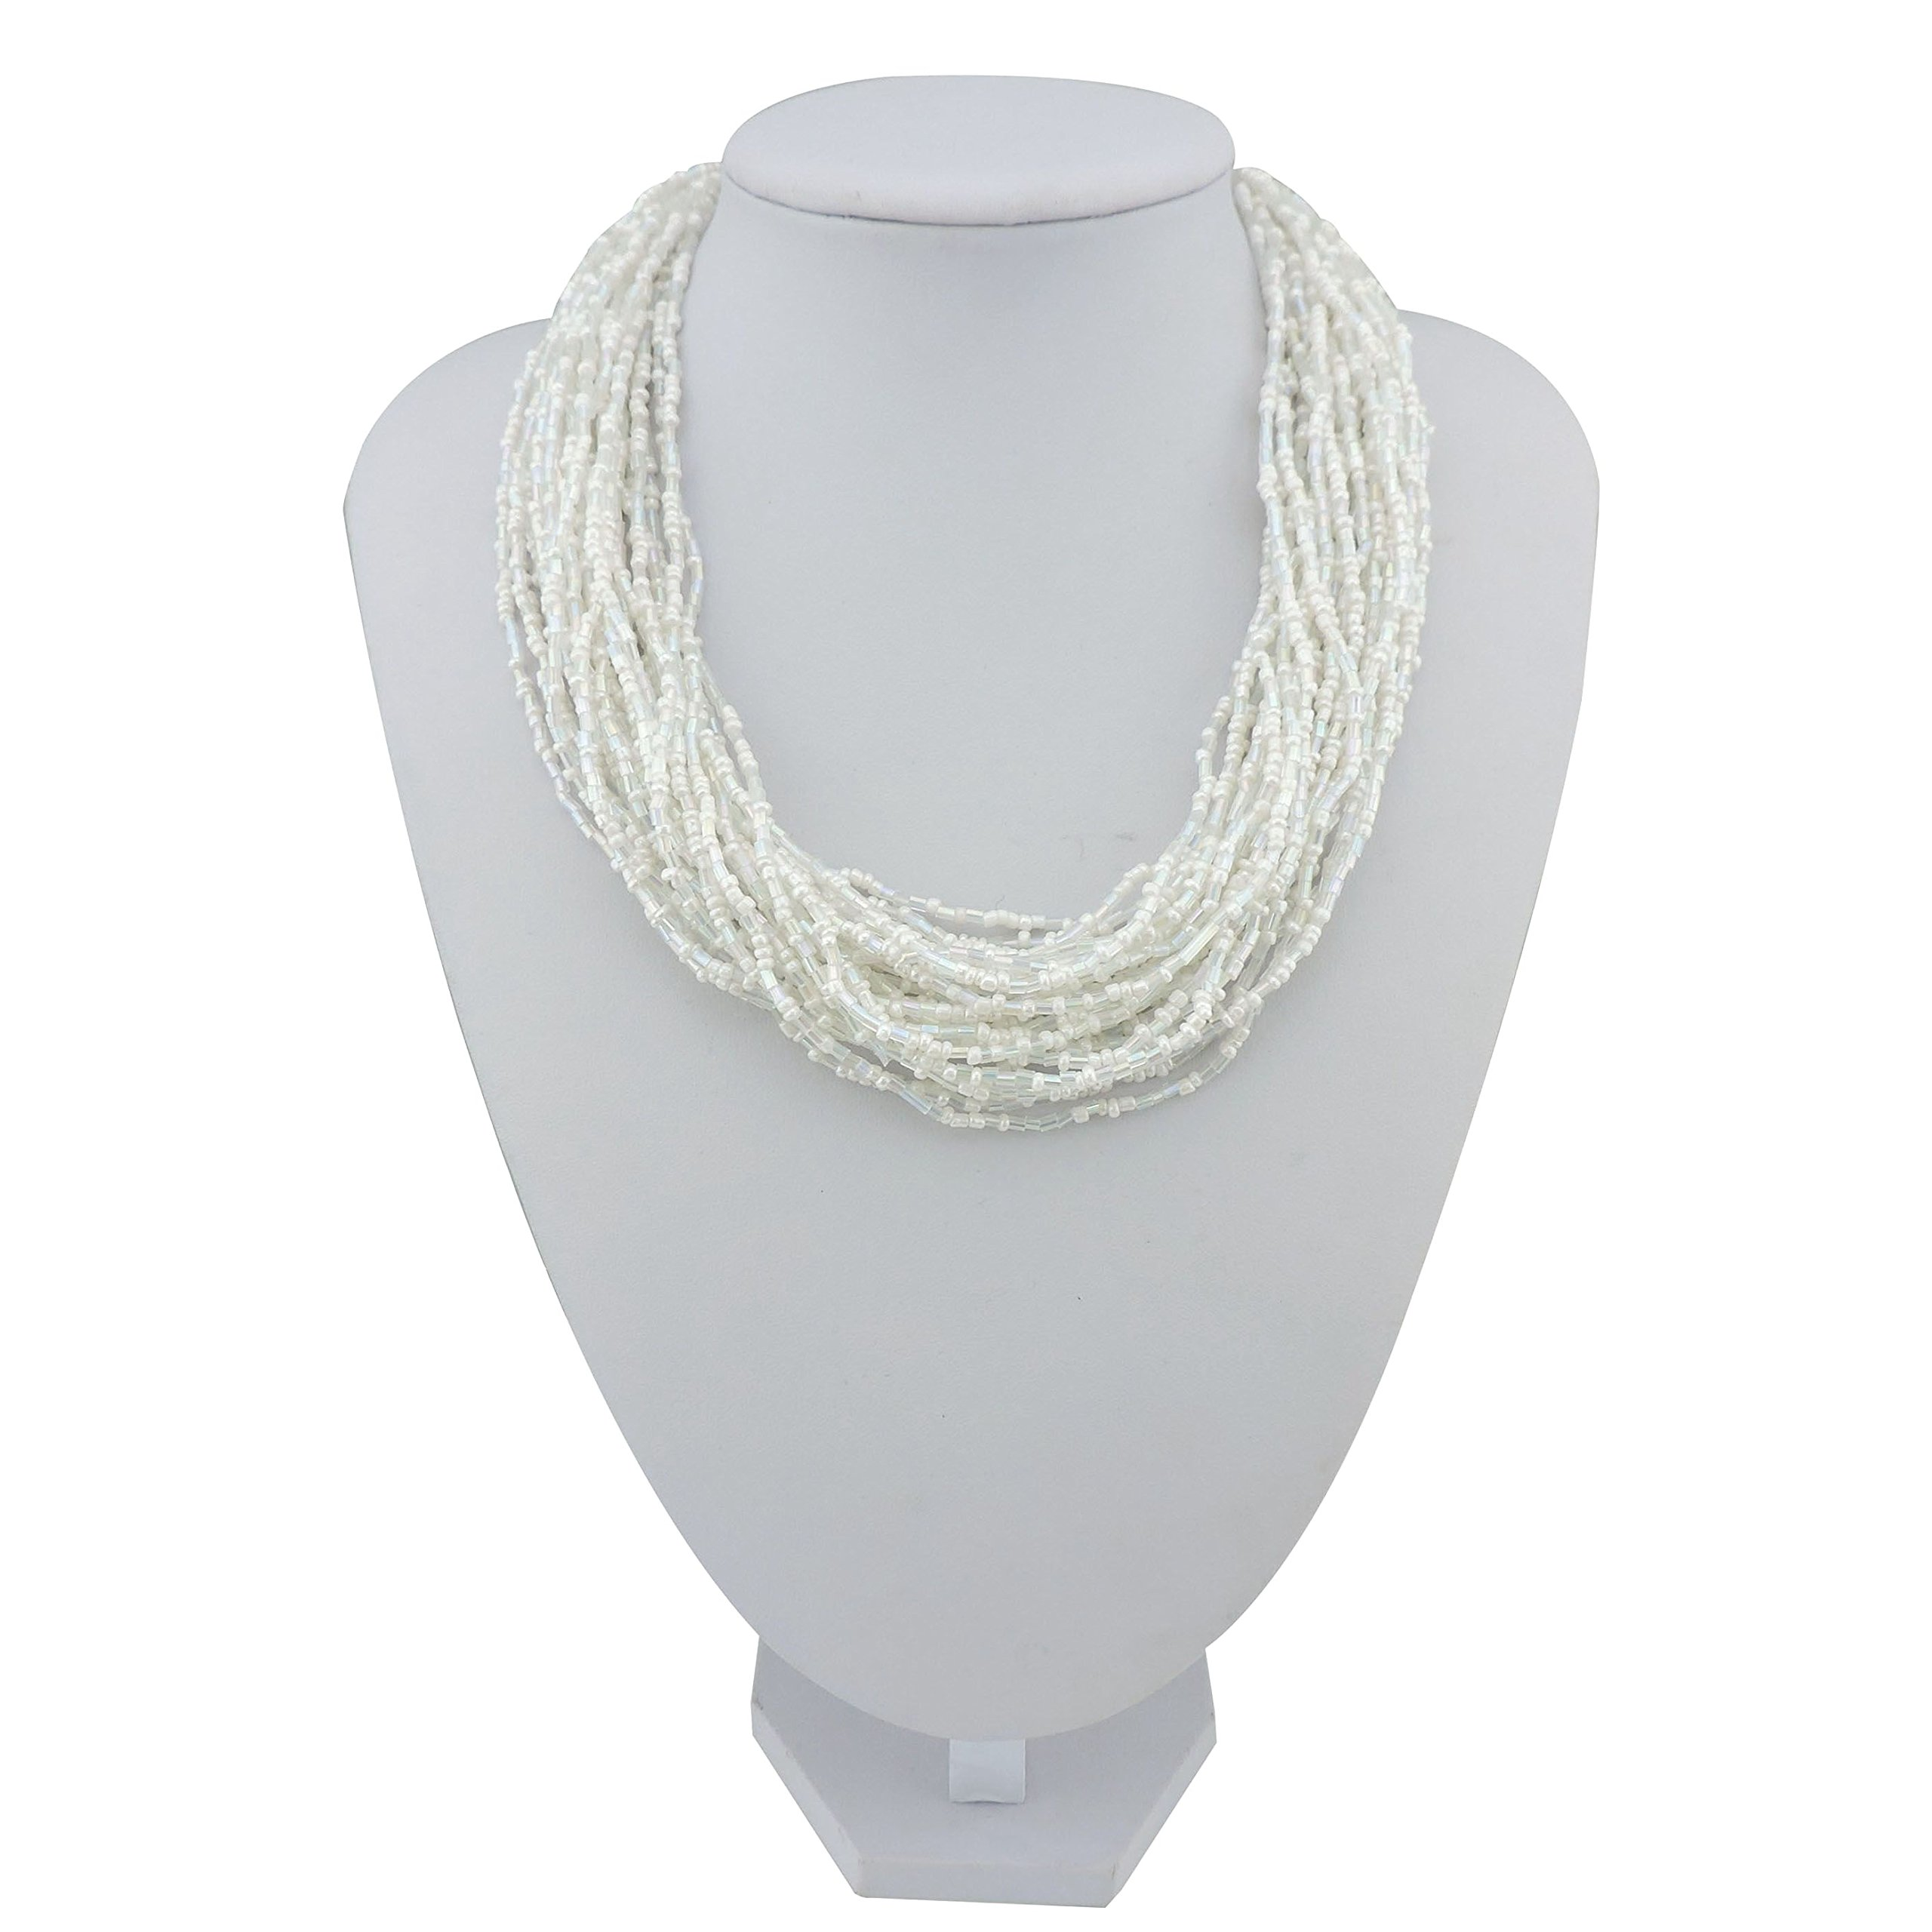 Bocar Multiple Strand Handmade Beaded 16'' Statement Collar Necklace for Women with Gift Box (NK-10402-white)